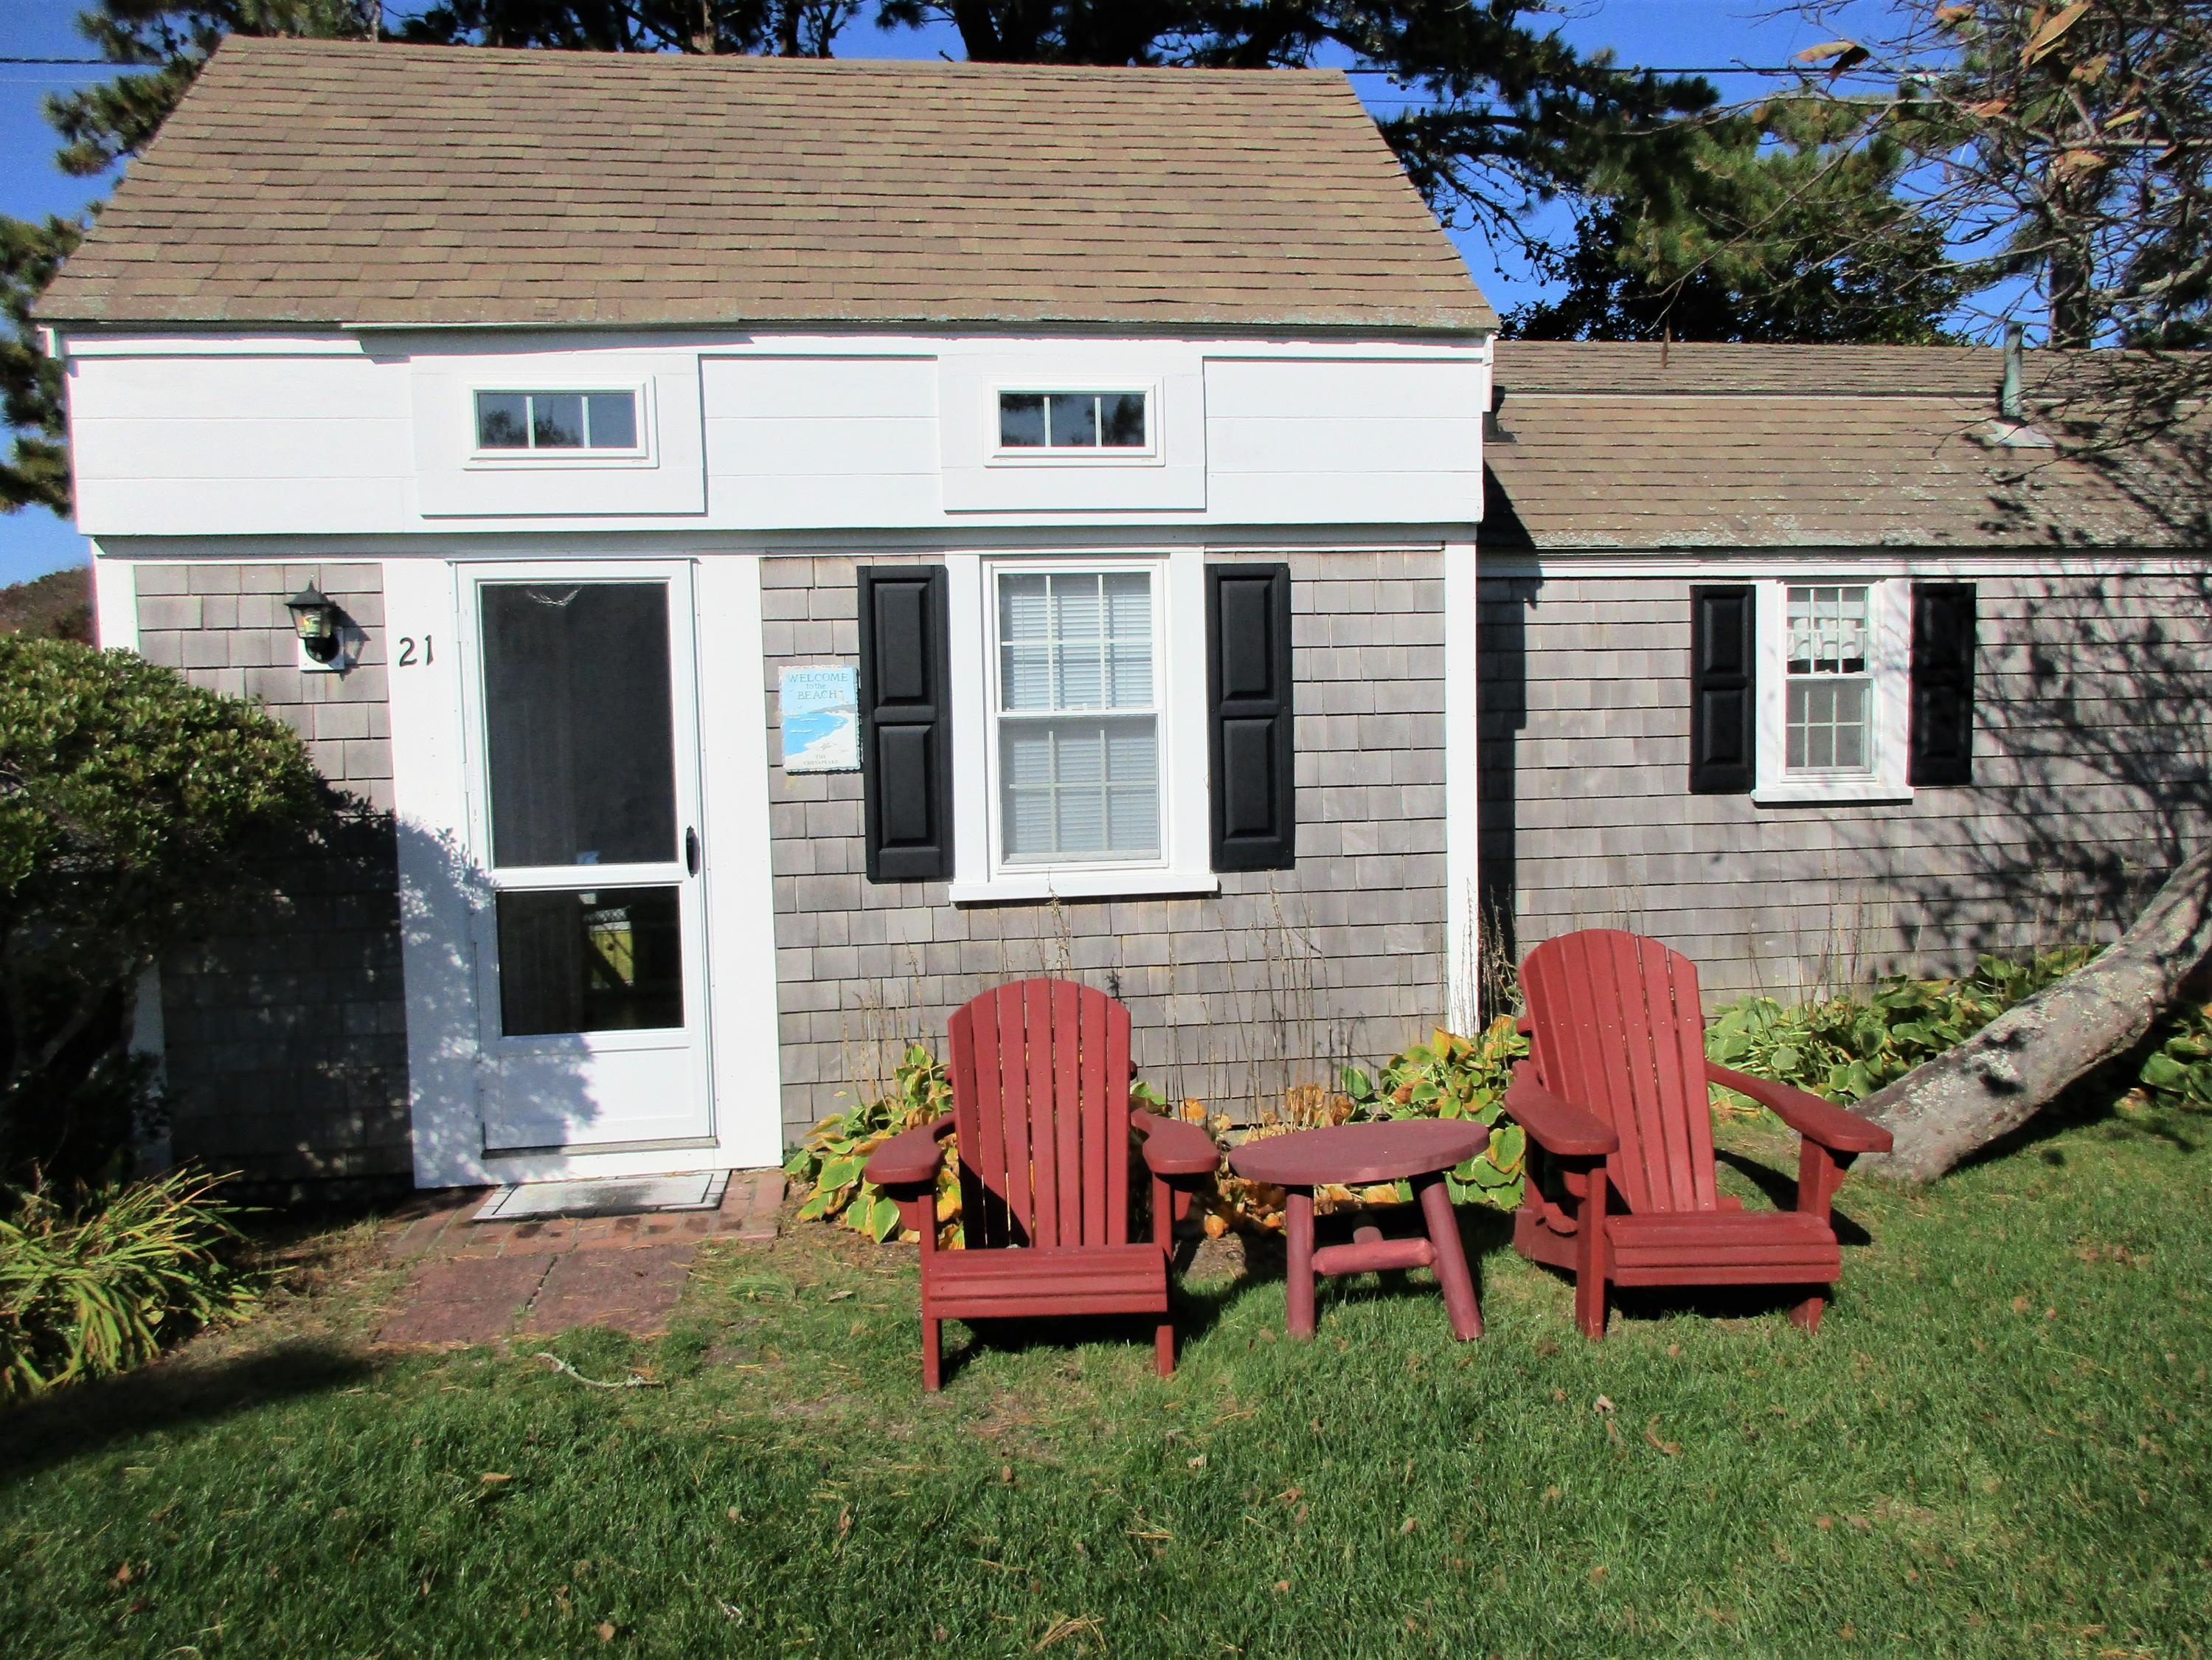 135 S. Shore Drive, South Yarmouth MA, 02664 details